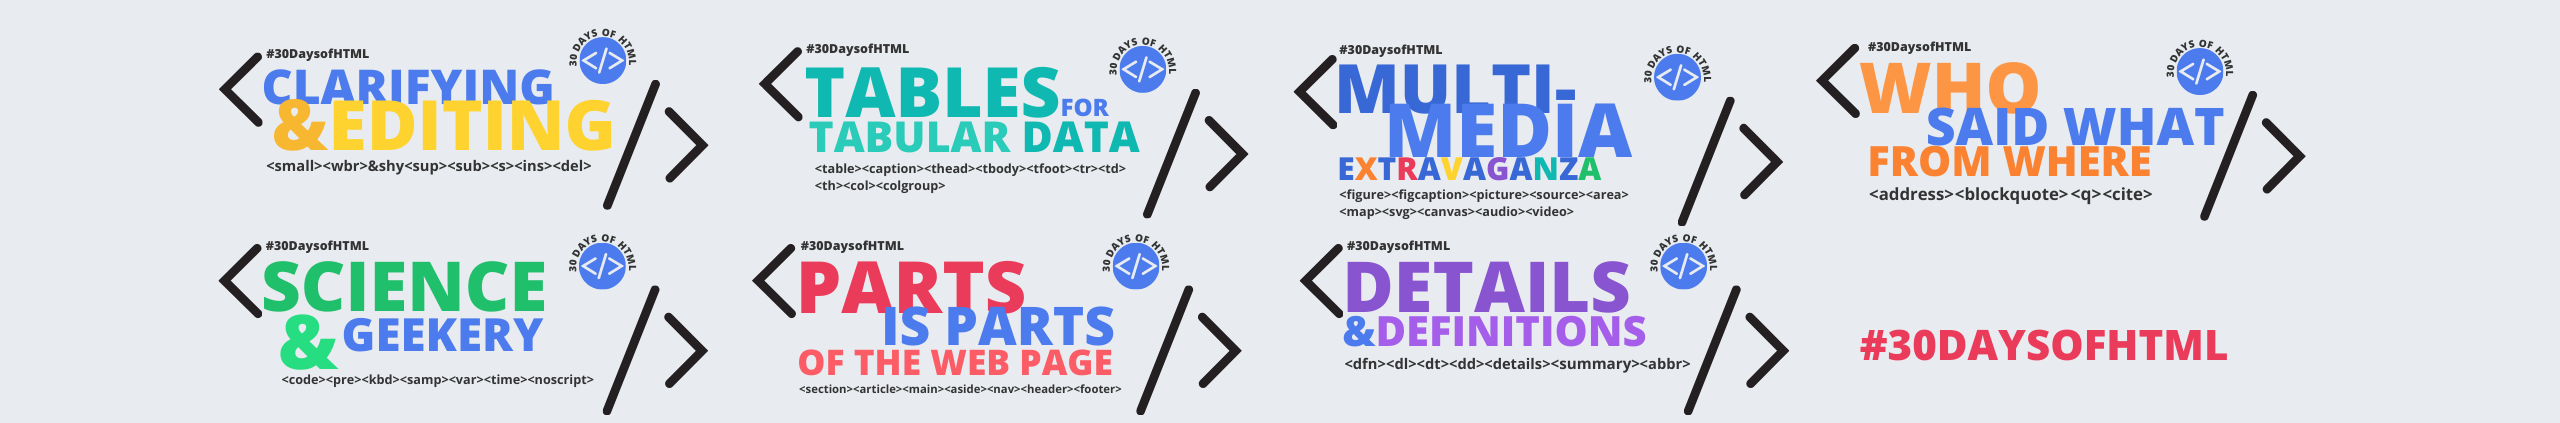 #30DaysofHTML banner graphic.